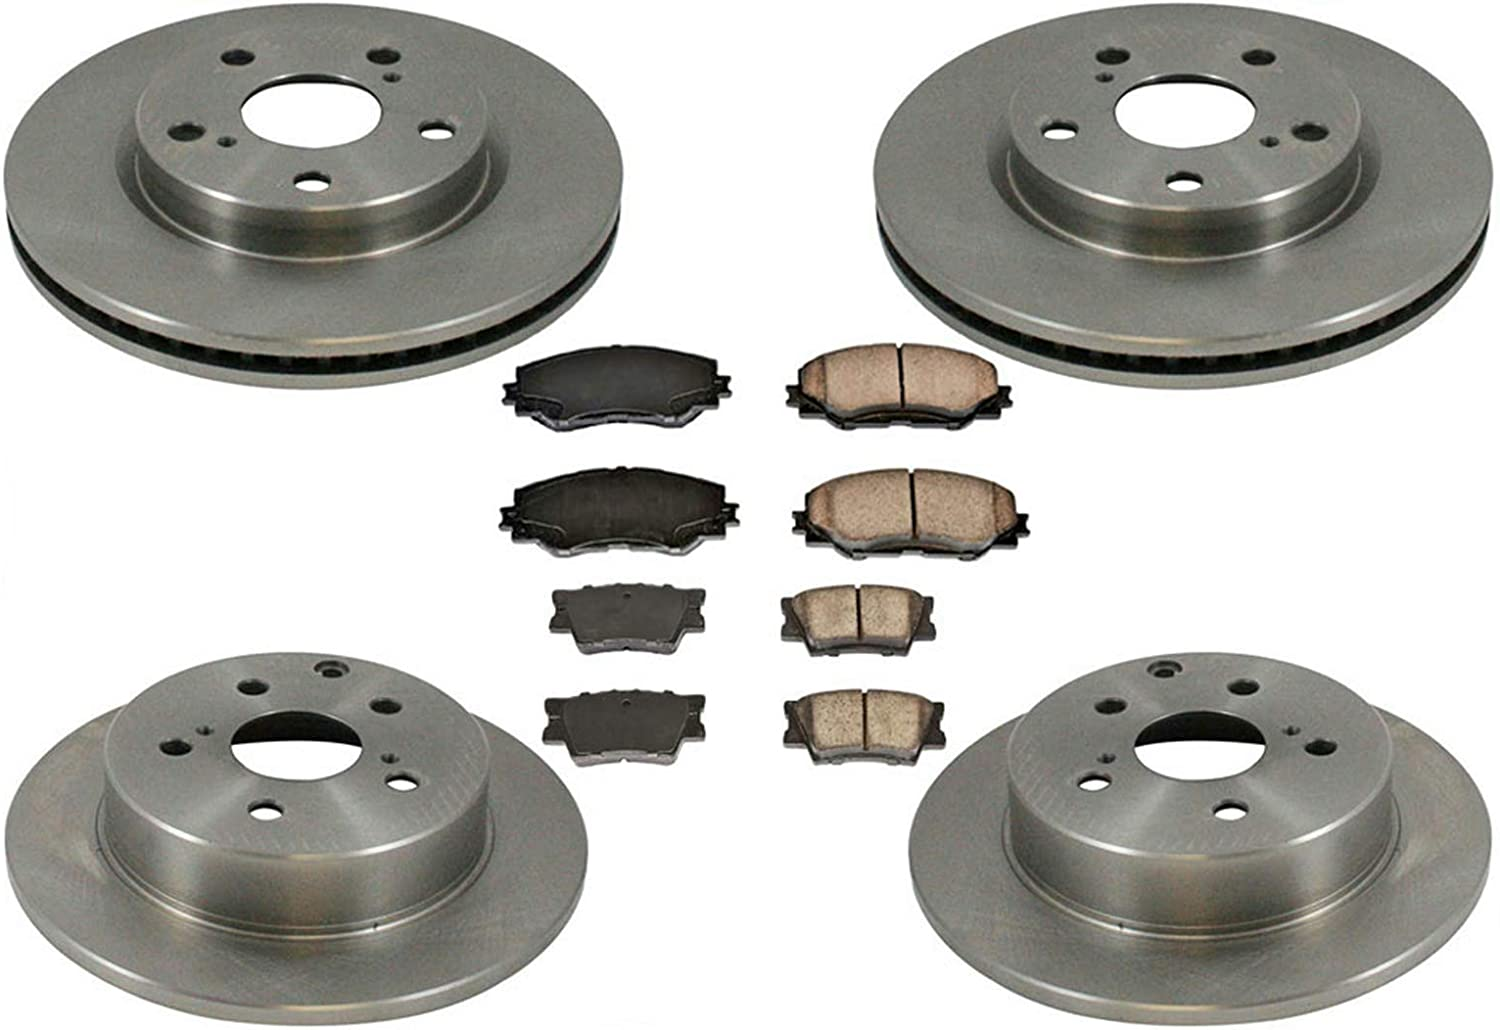 For 2008 Subaru Impreza Rear eLine Plain Brake Rotors Ceramic Brake Pads